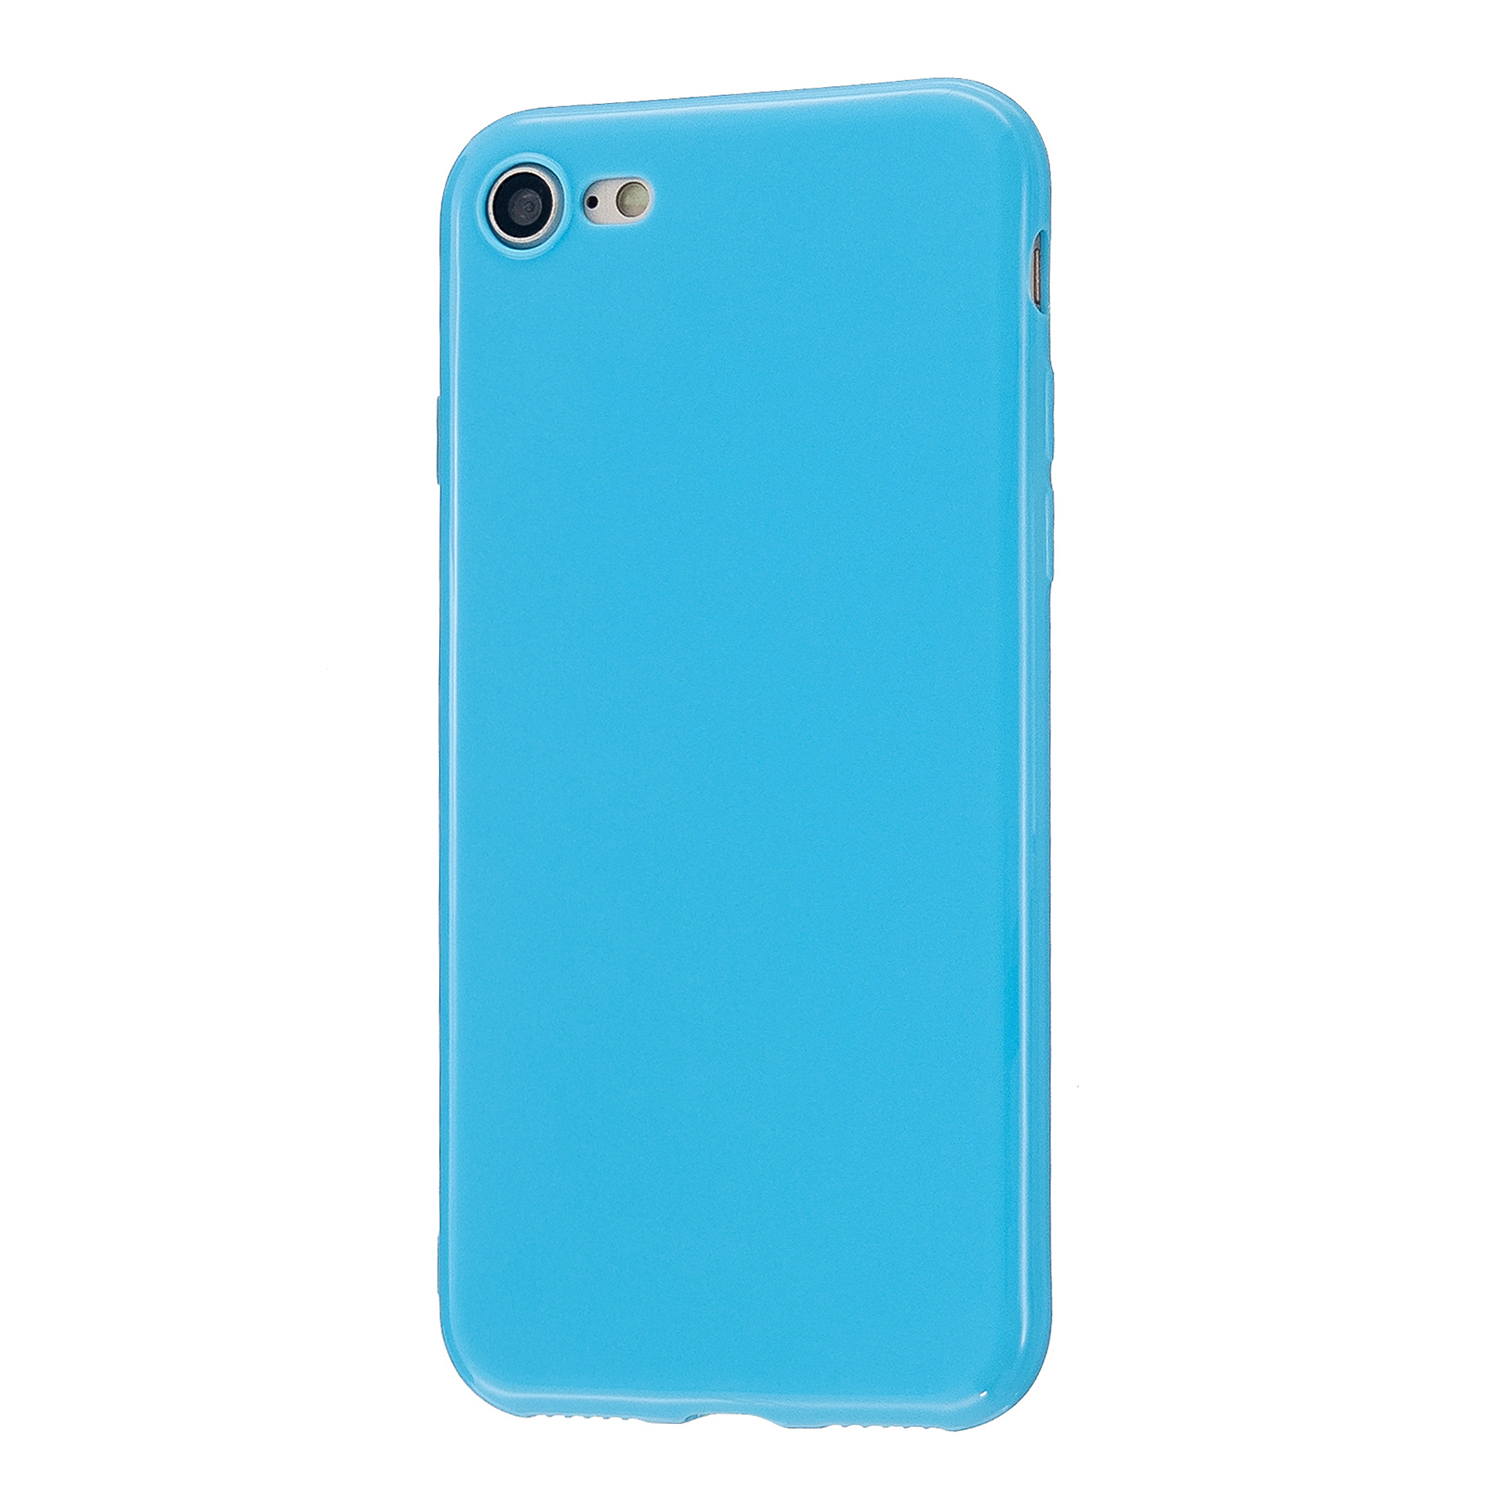 For iPhone 5/5S/SE/6/6S/6 Plus/6S Plus/7/8/7 Plus/8 Plus Cellphone Cover Soft TPU Bumper Protector Phone Shell Ocean blue